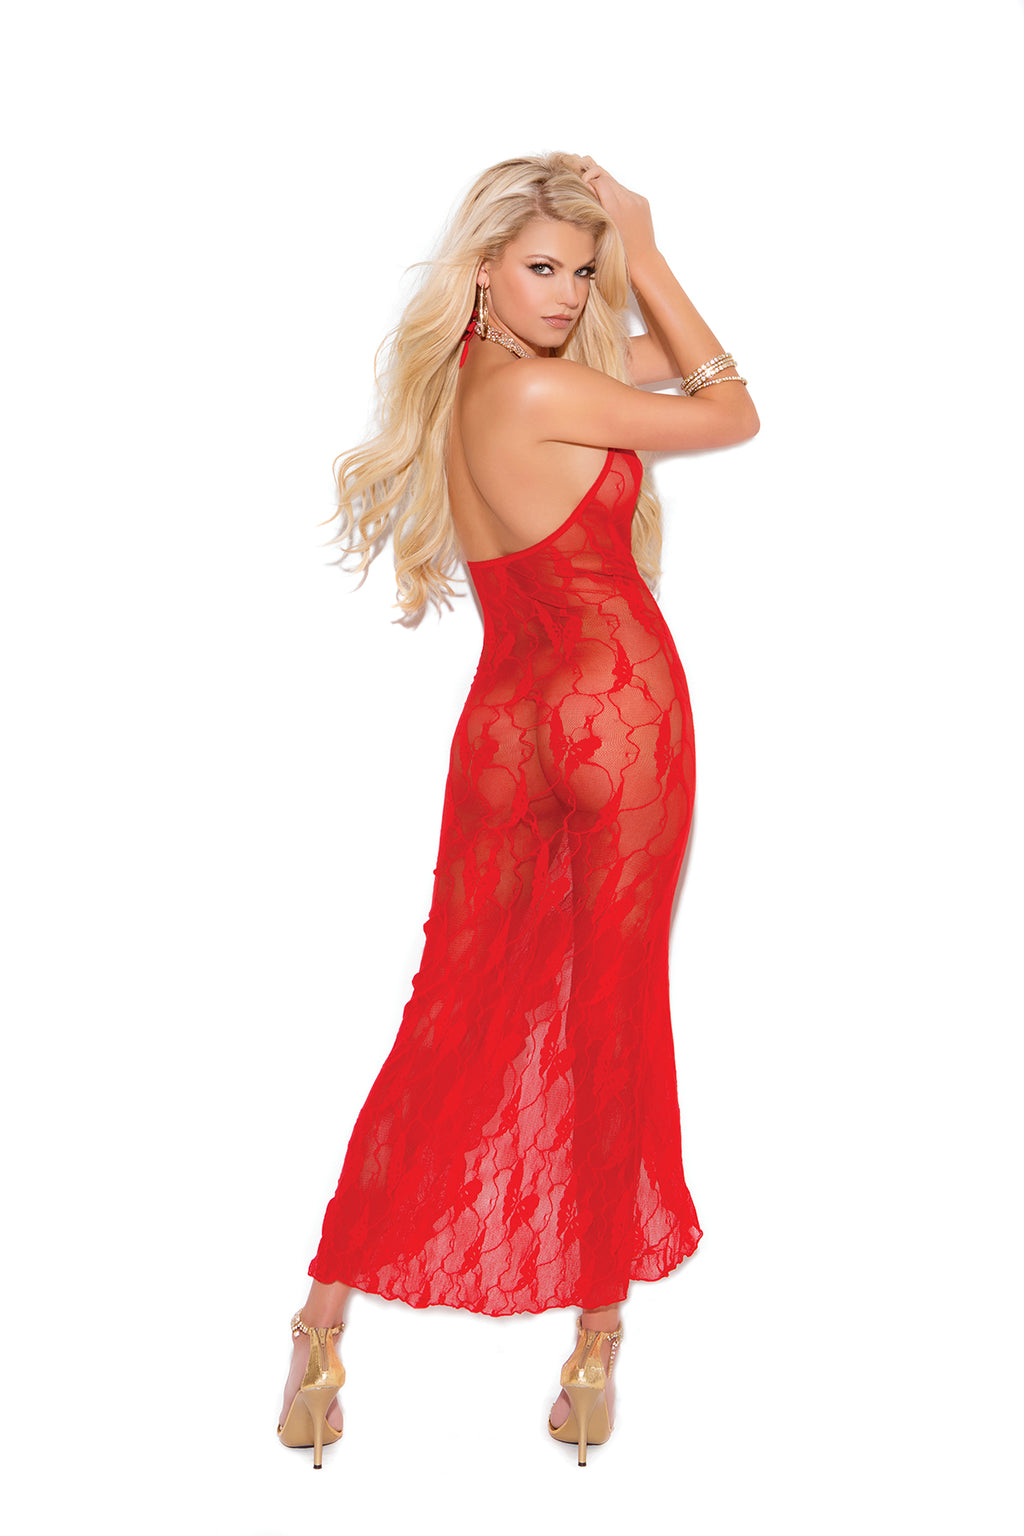 Elegant Moments 1442 Red Lace Butterfly Dress